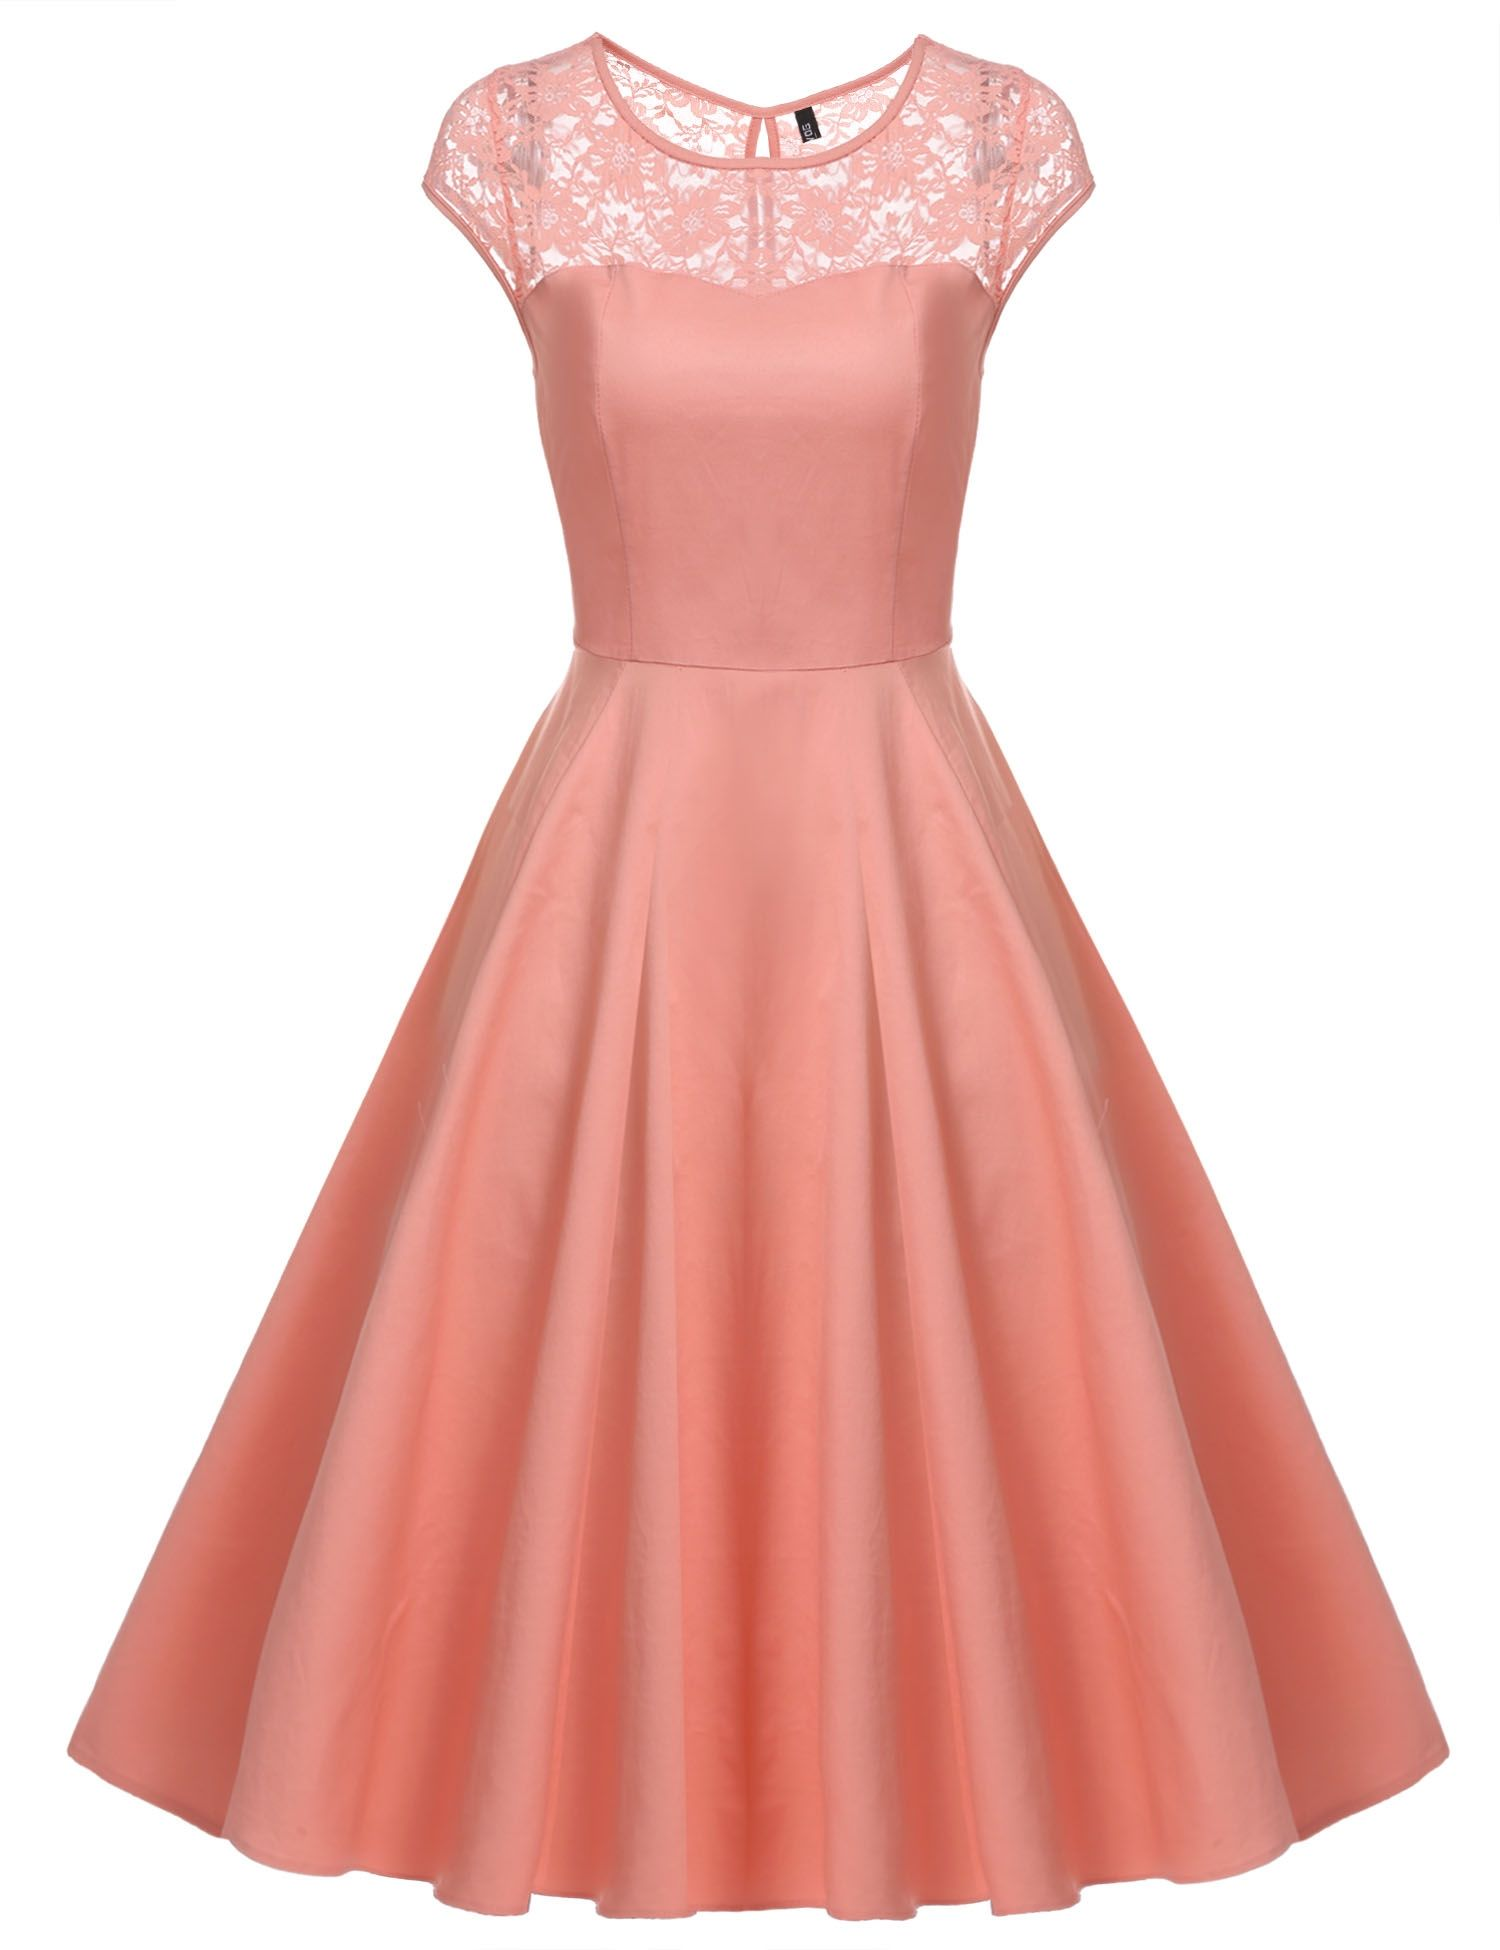 Pink Cap Sleeve 1950s Vintage Style Lace Wedding Swing Midi Dress ...